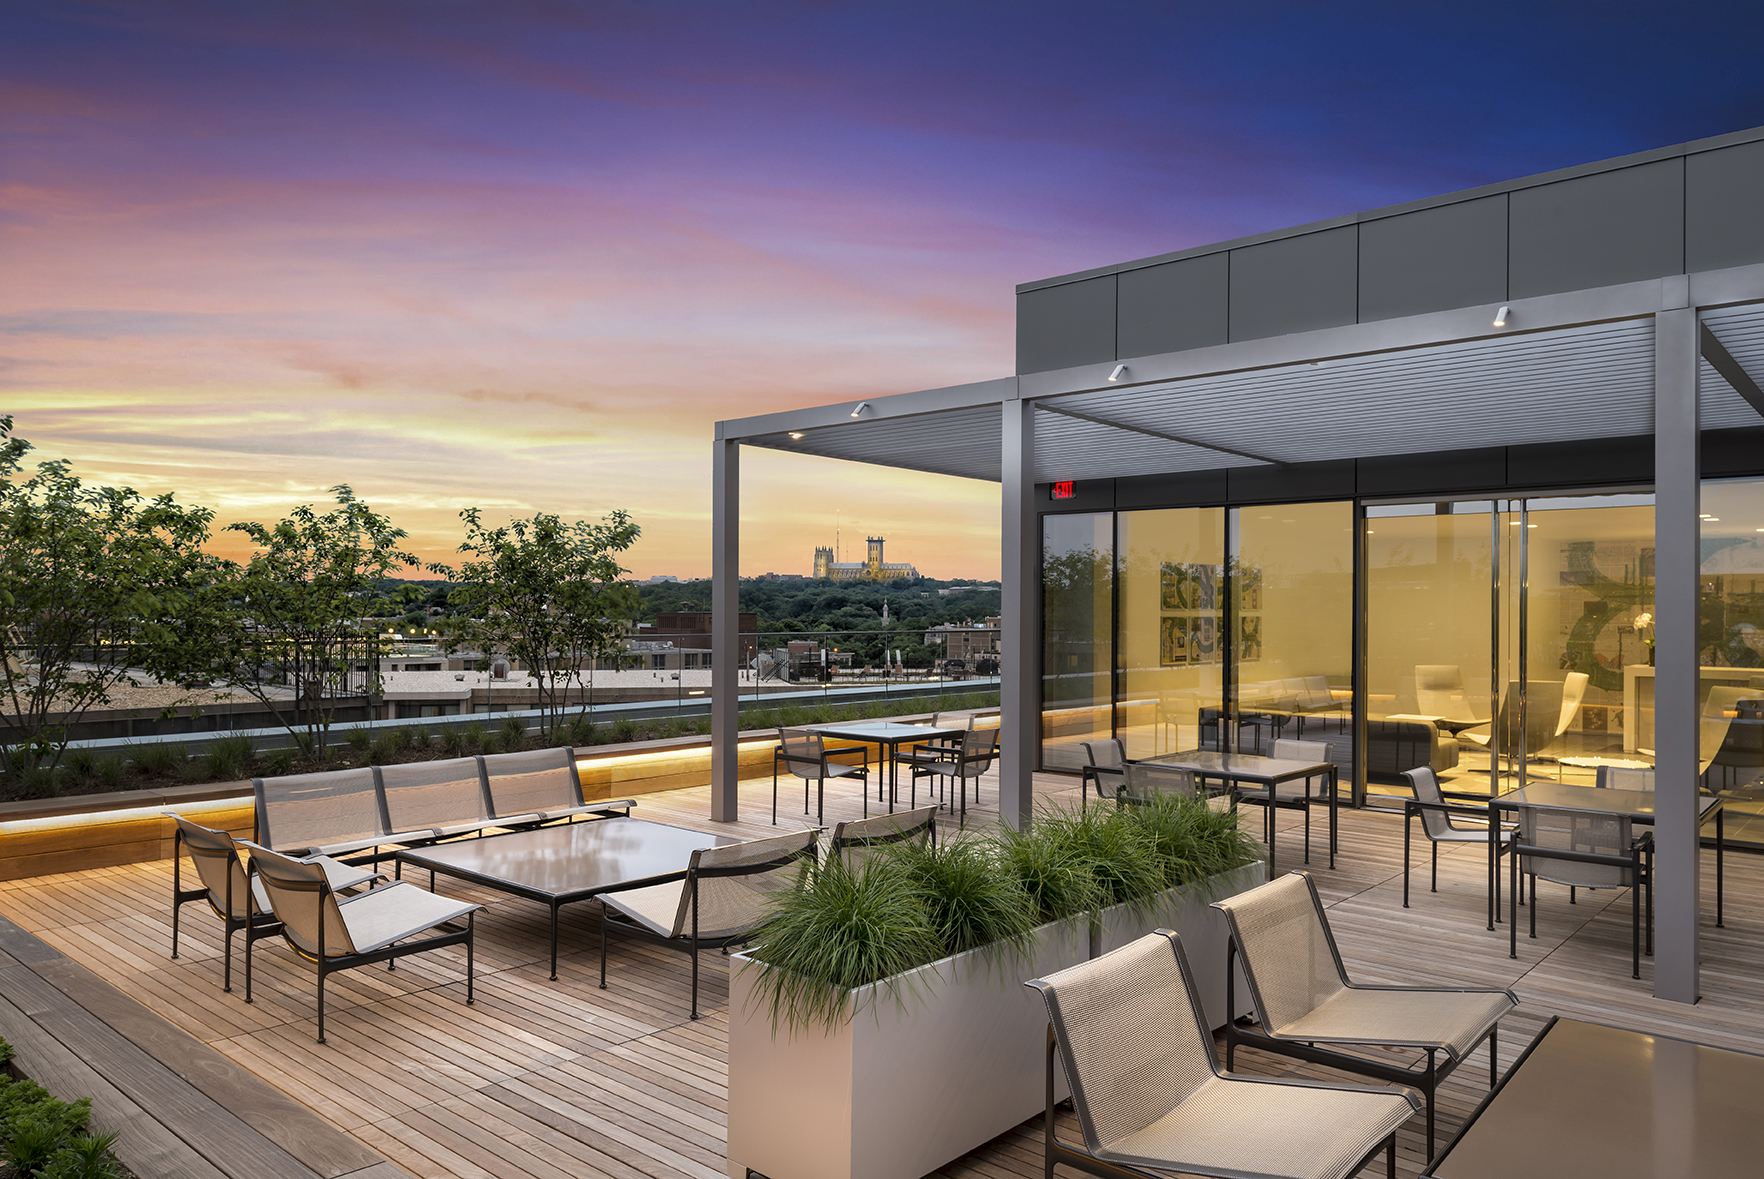 Rooftop lounge on an office building